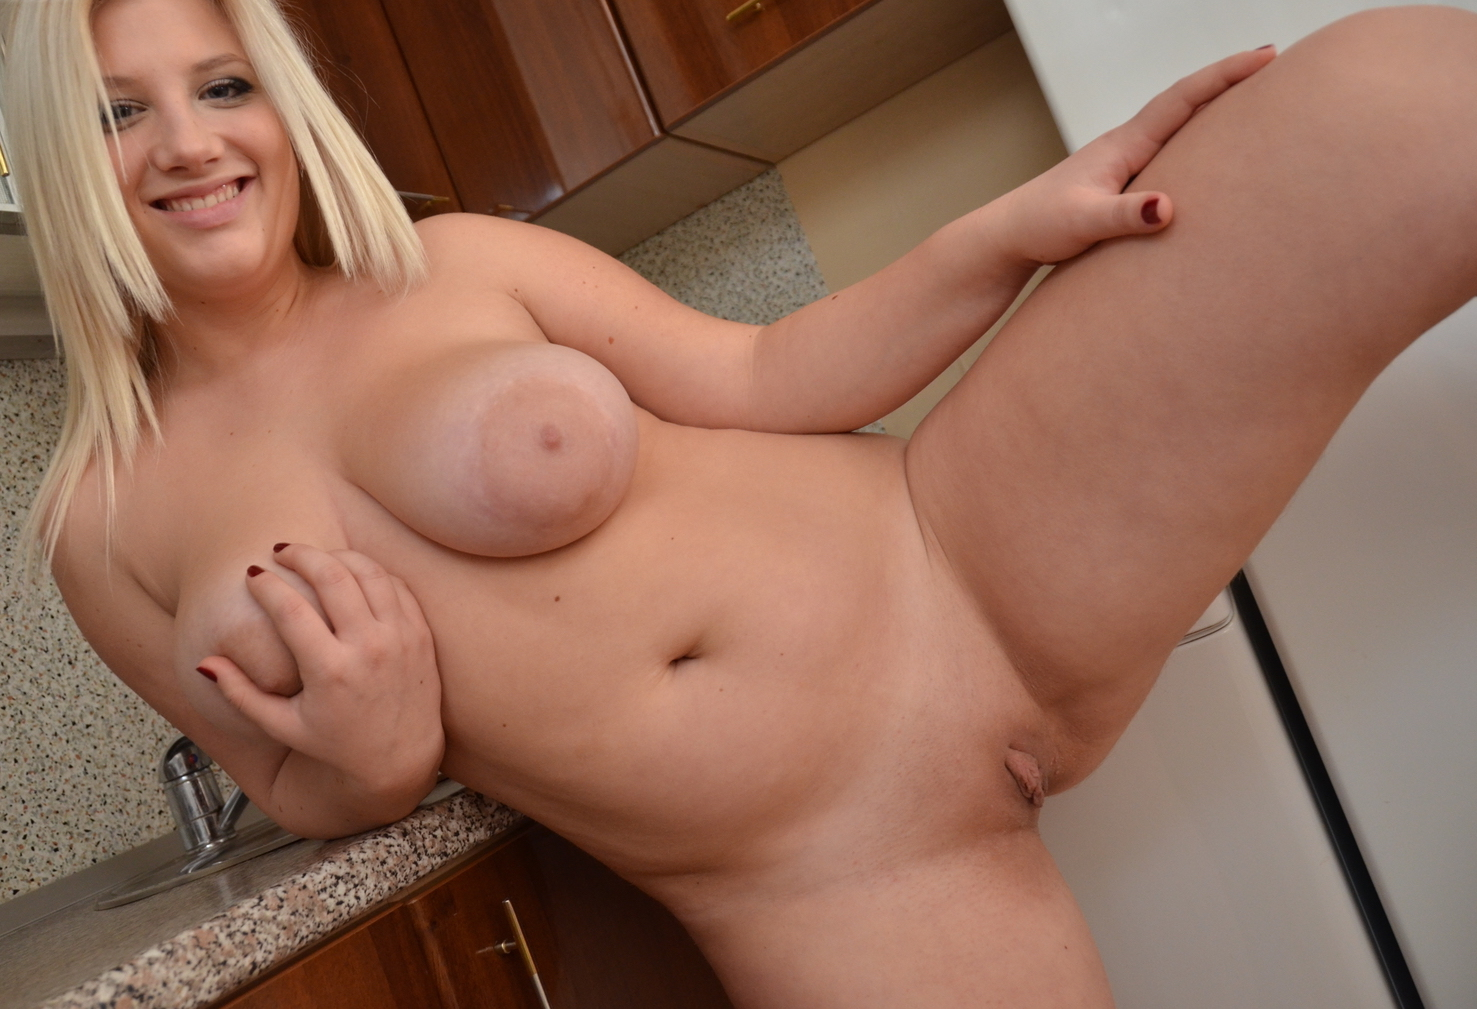 Super sexy blonde BBW talks dirty about her first anal fuck